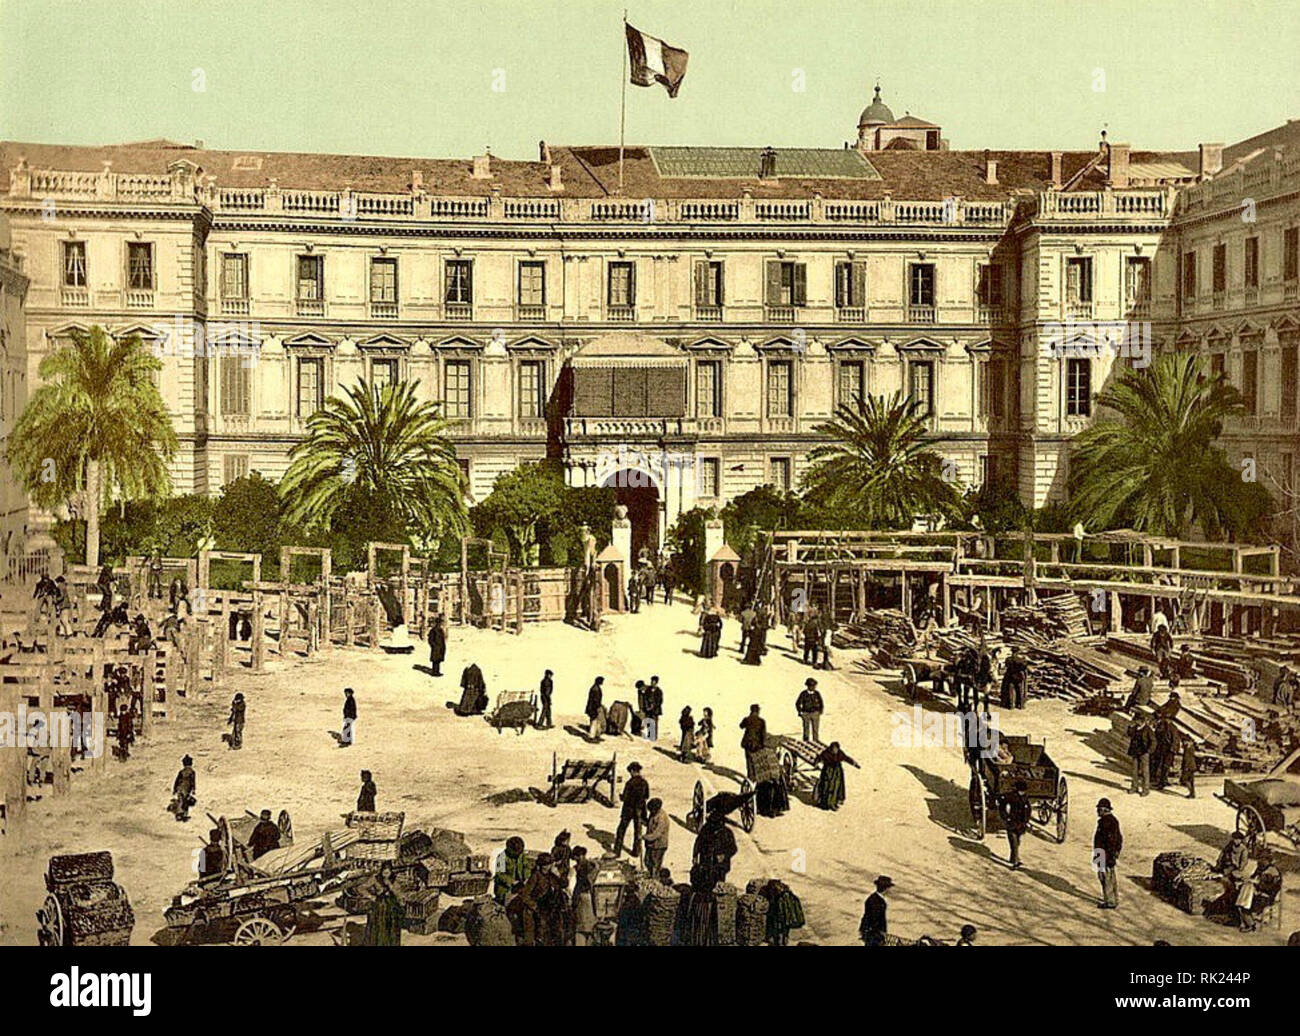 Palais de la Préfecture, Nice, France. Between 1890 & 1910. - Stock Image